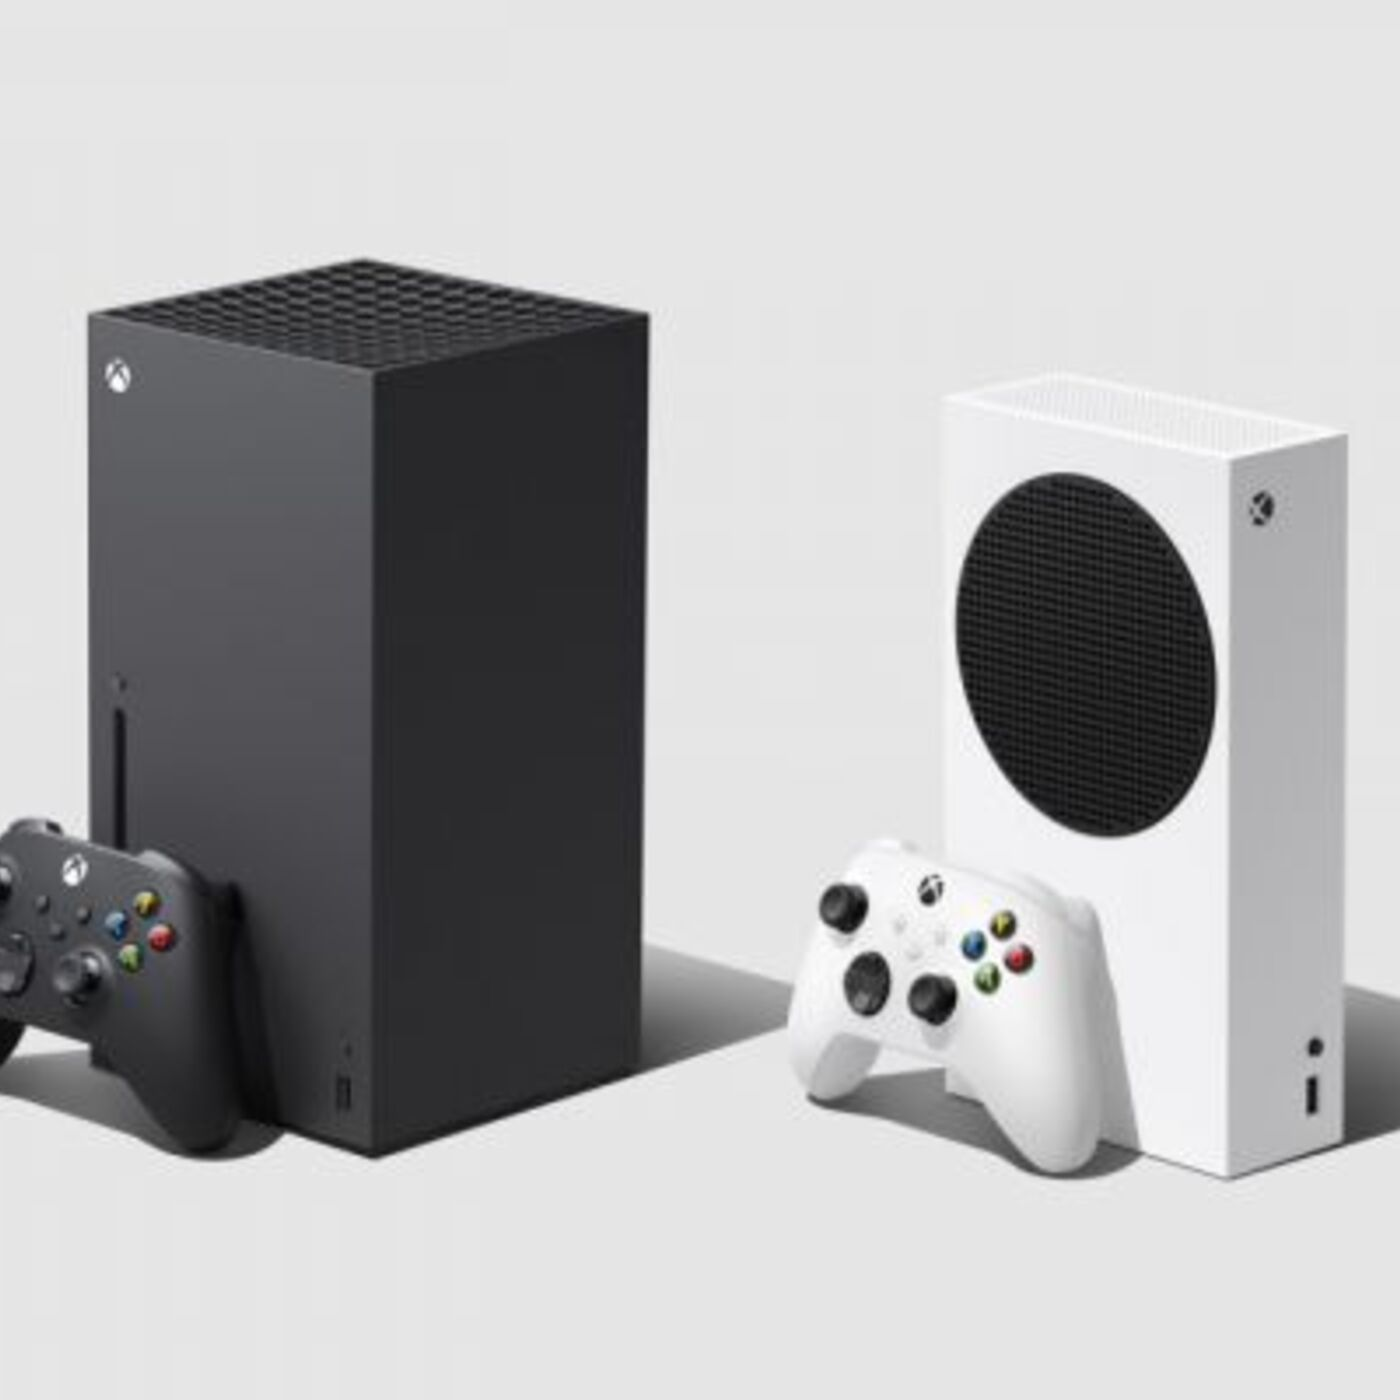 Which Next-Generation Xbox Console is in Karl's Future?